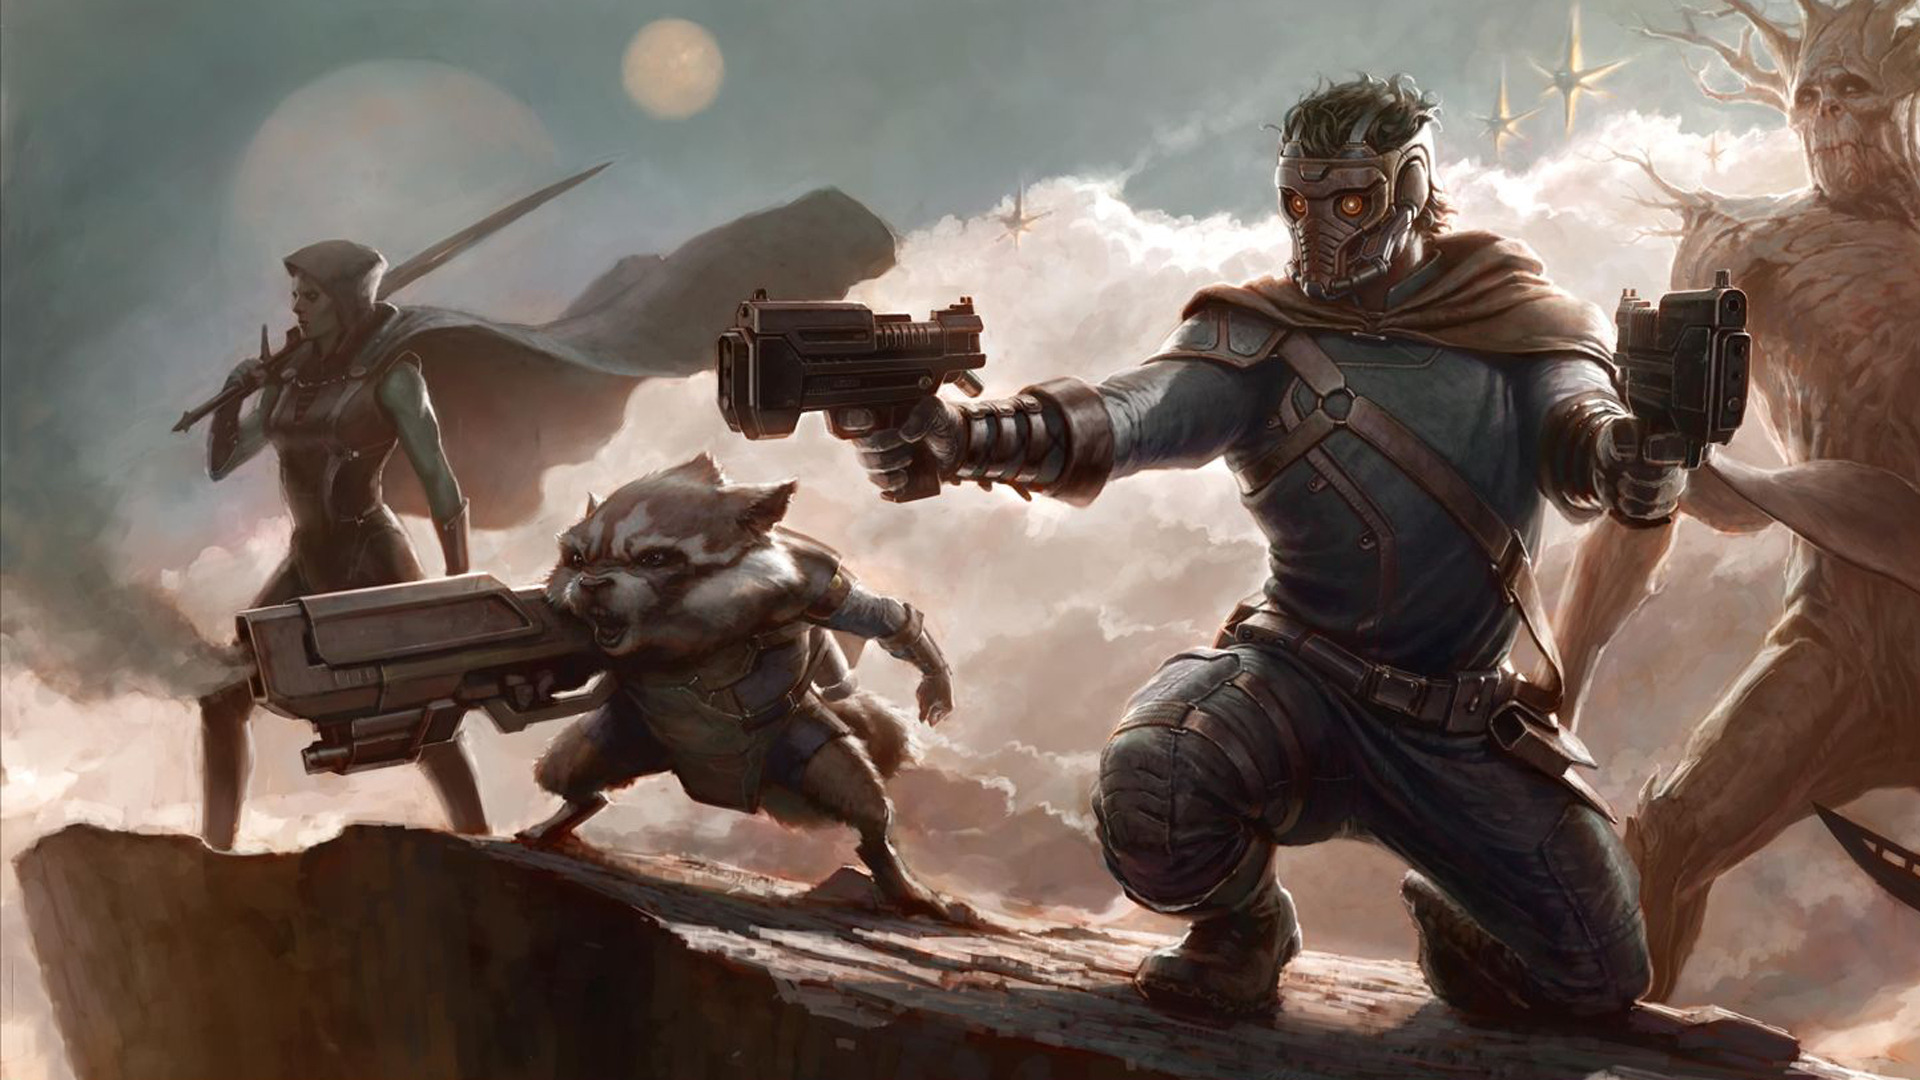 guardians of the galaxy Computer Wallpapers, Desktop Backgrounds 1583